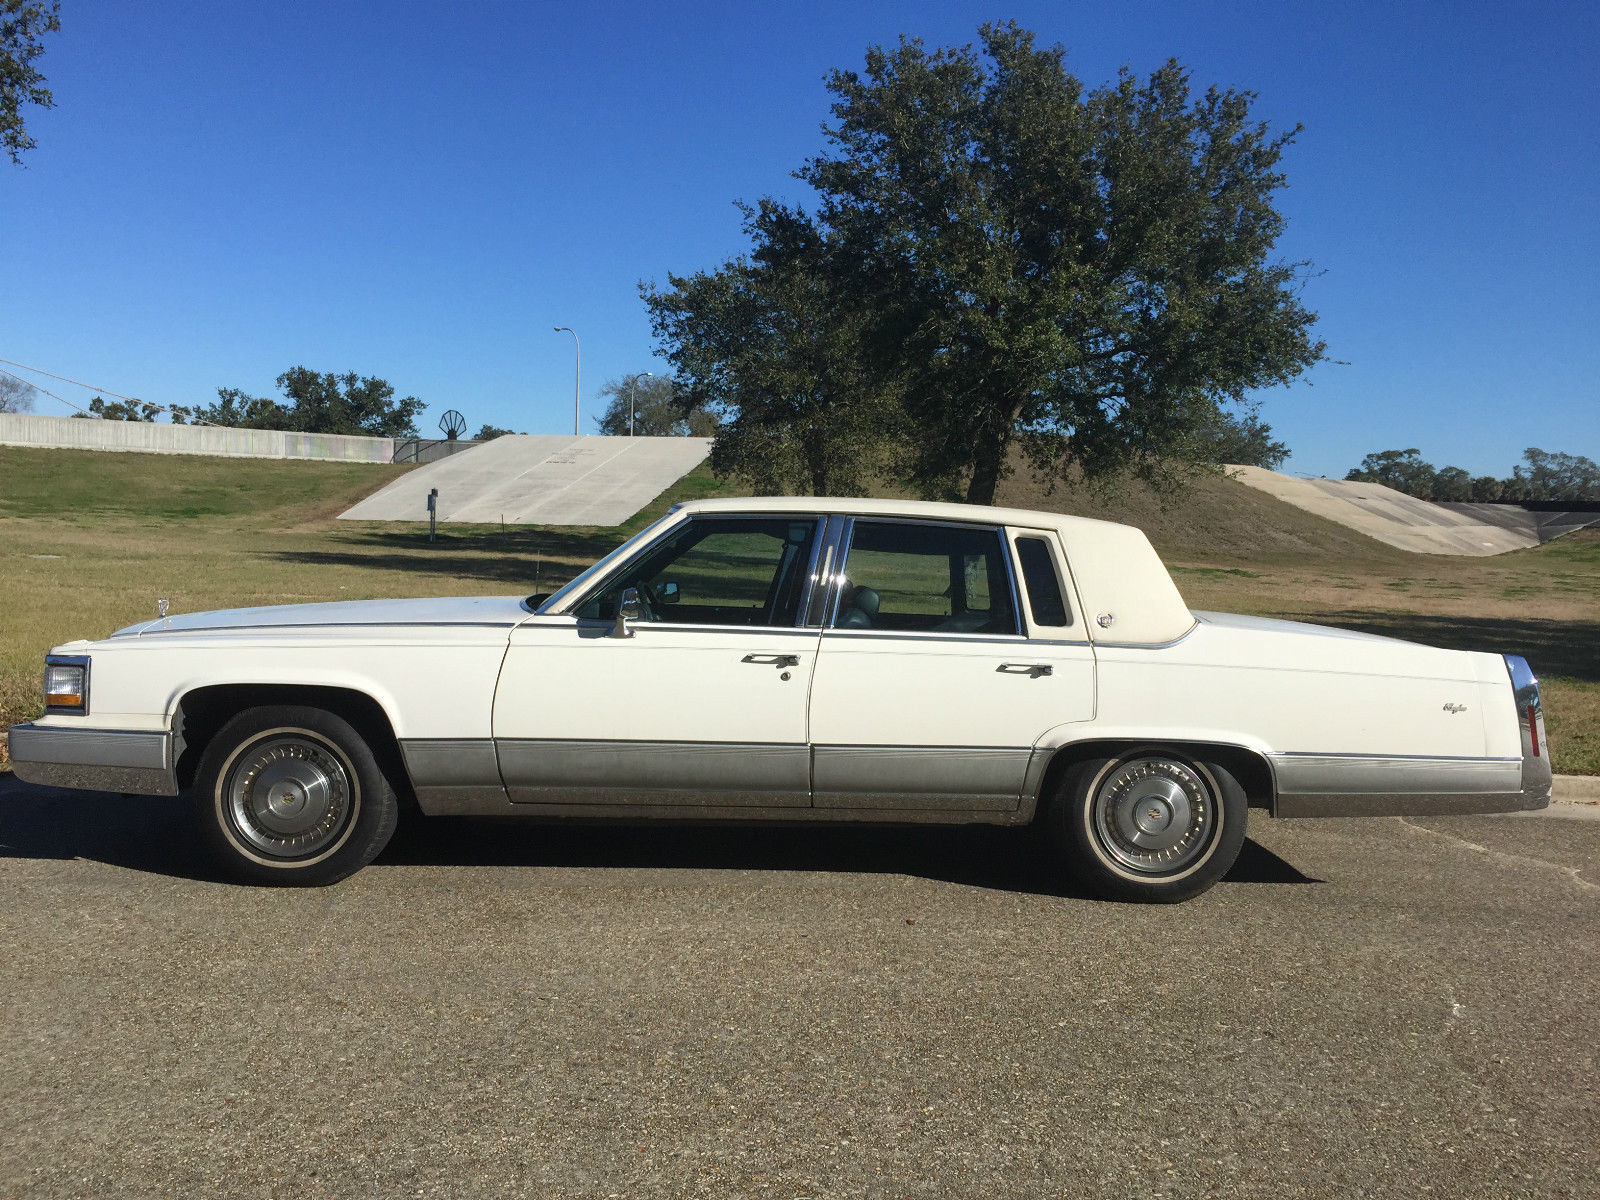 1991-cadillac-brougham-cherry-condition-